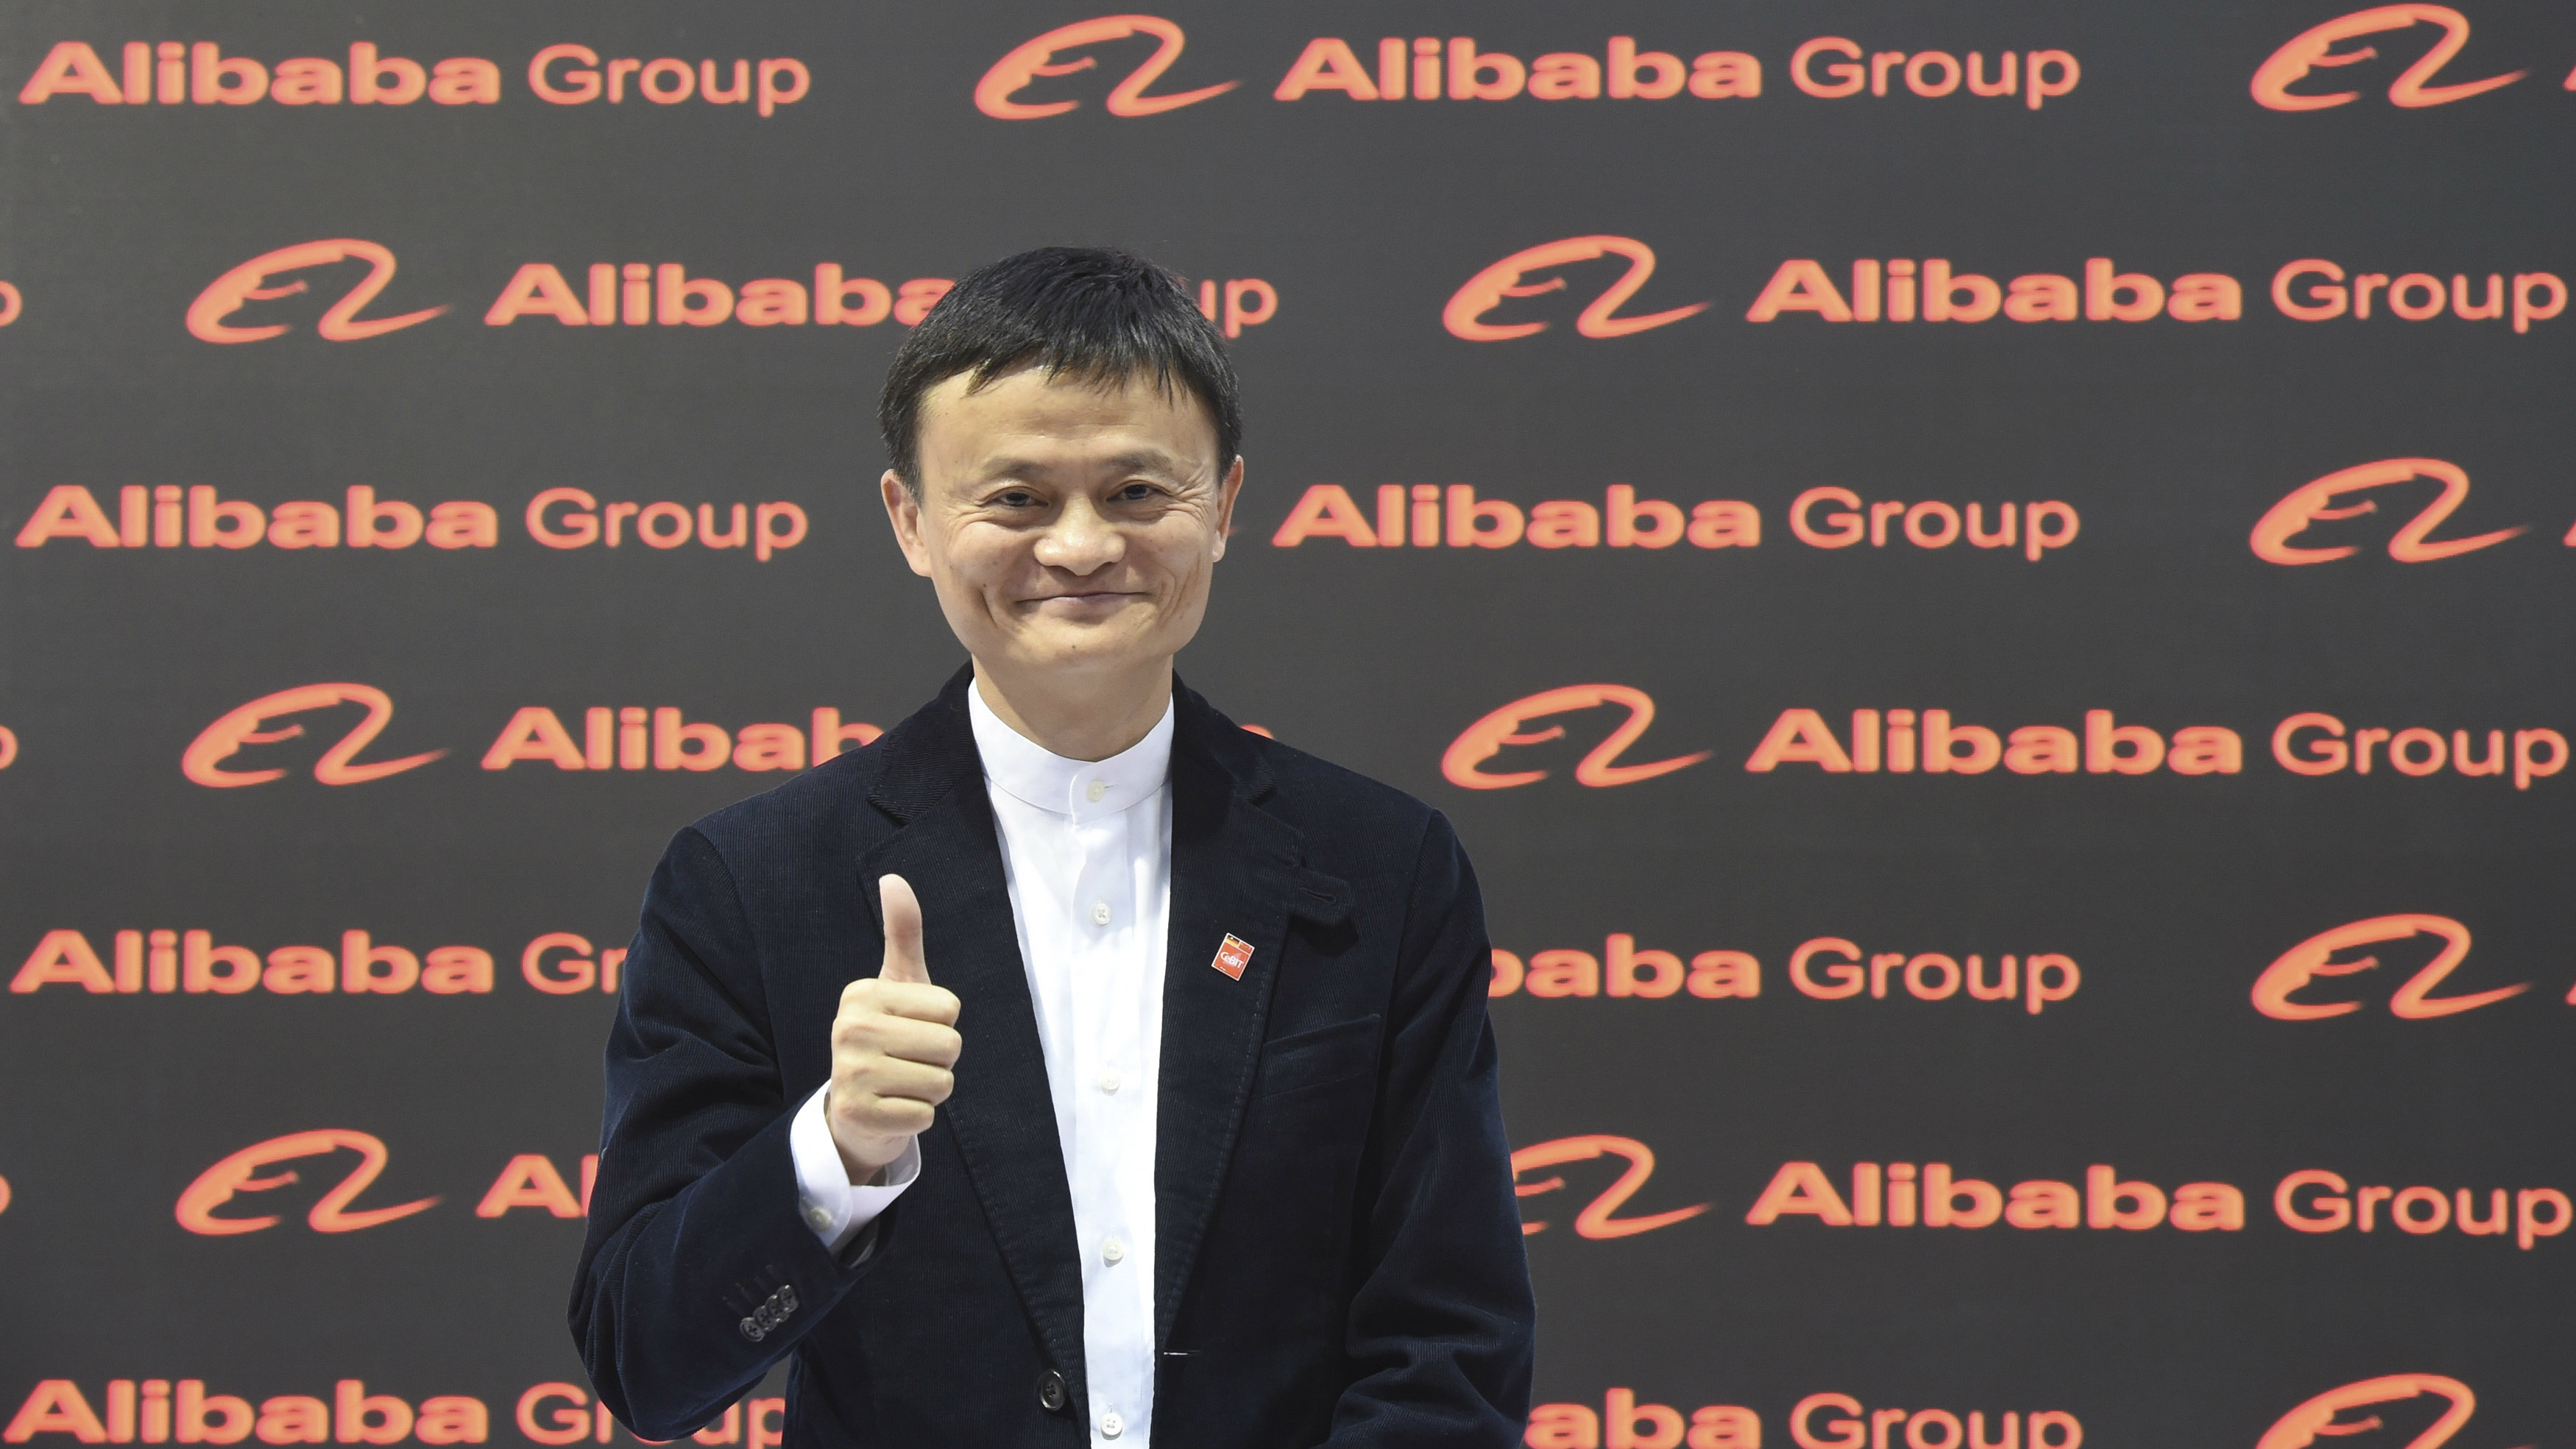 Alibaba just sold over $1 billion of merchandise in 8 minutes in China's largest online shopping day